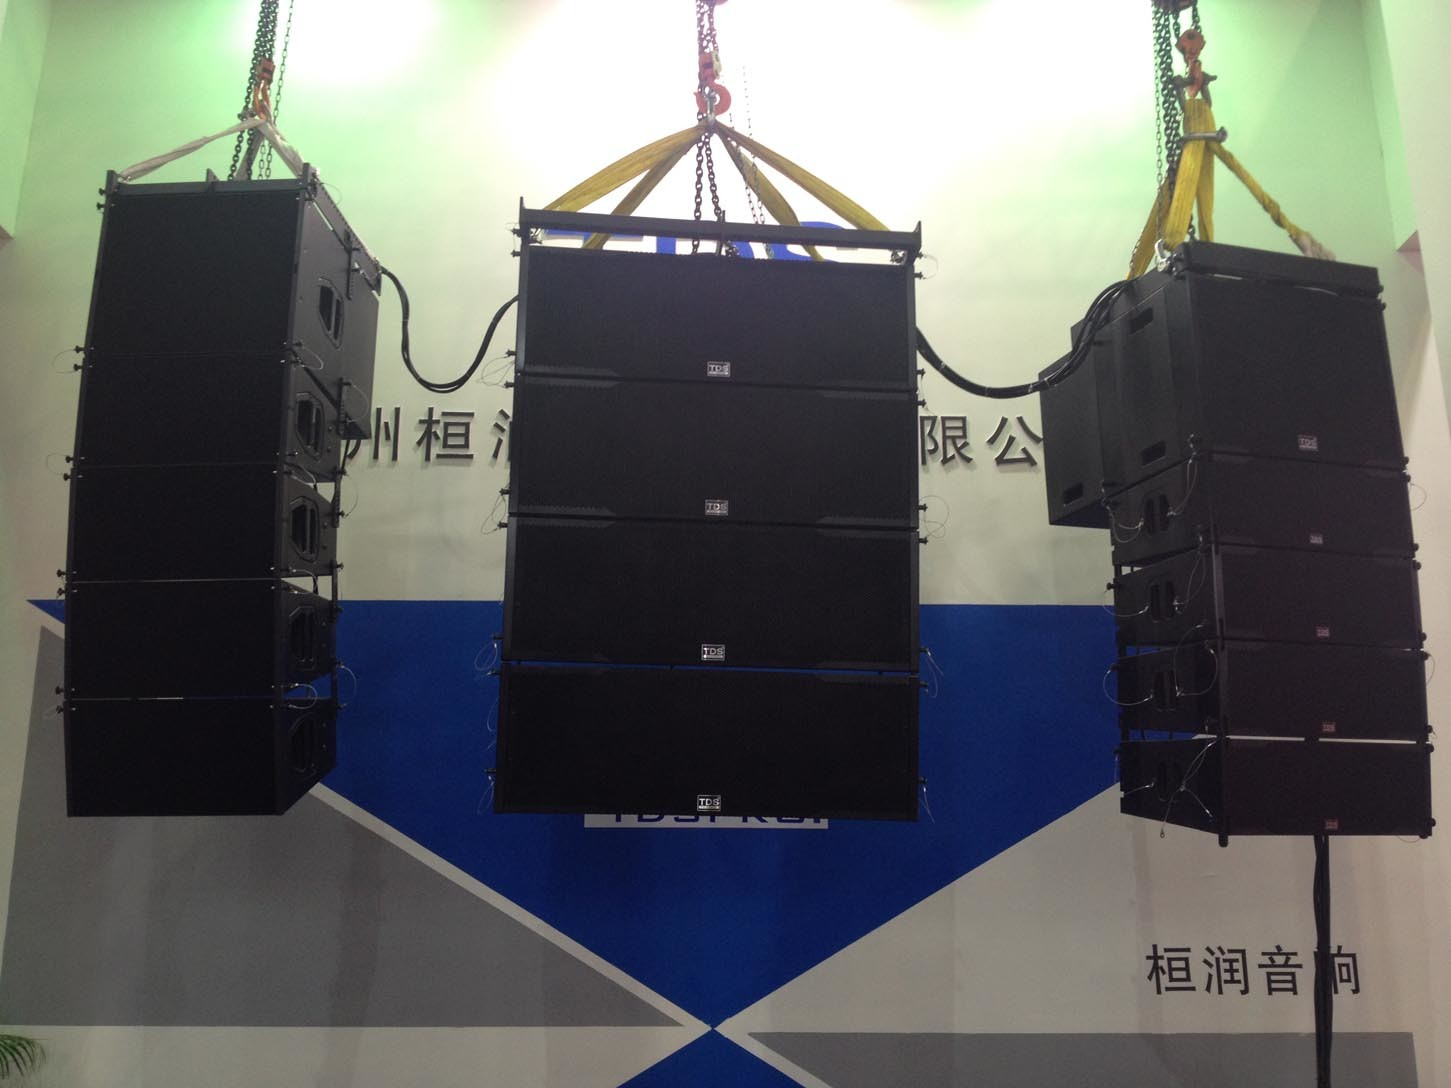 2014 PROLIGHT + SOUND GUANGZHOU